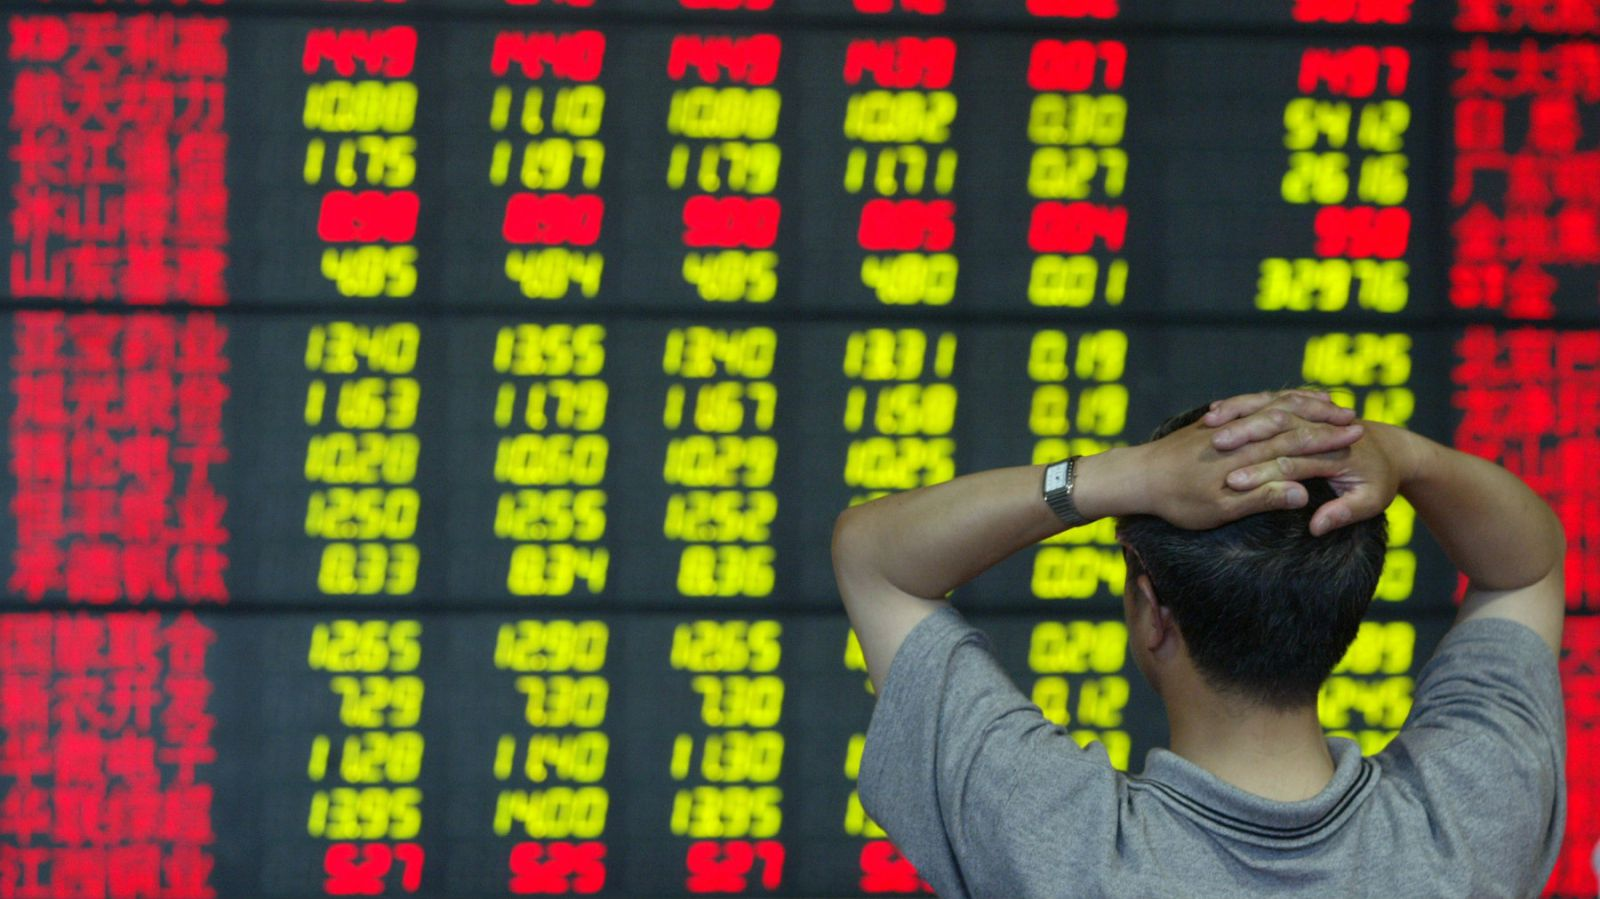 Tracking the Chinese Stock Markets